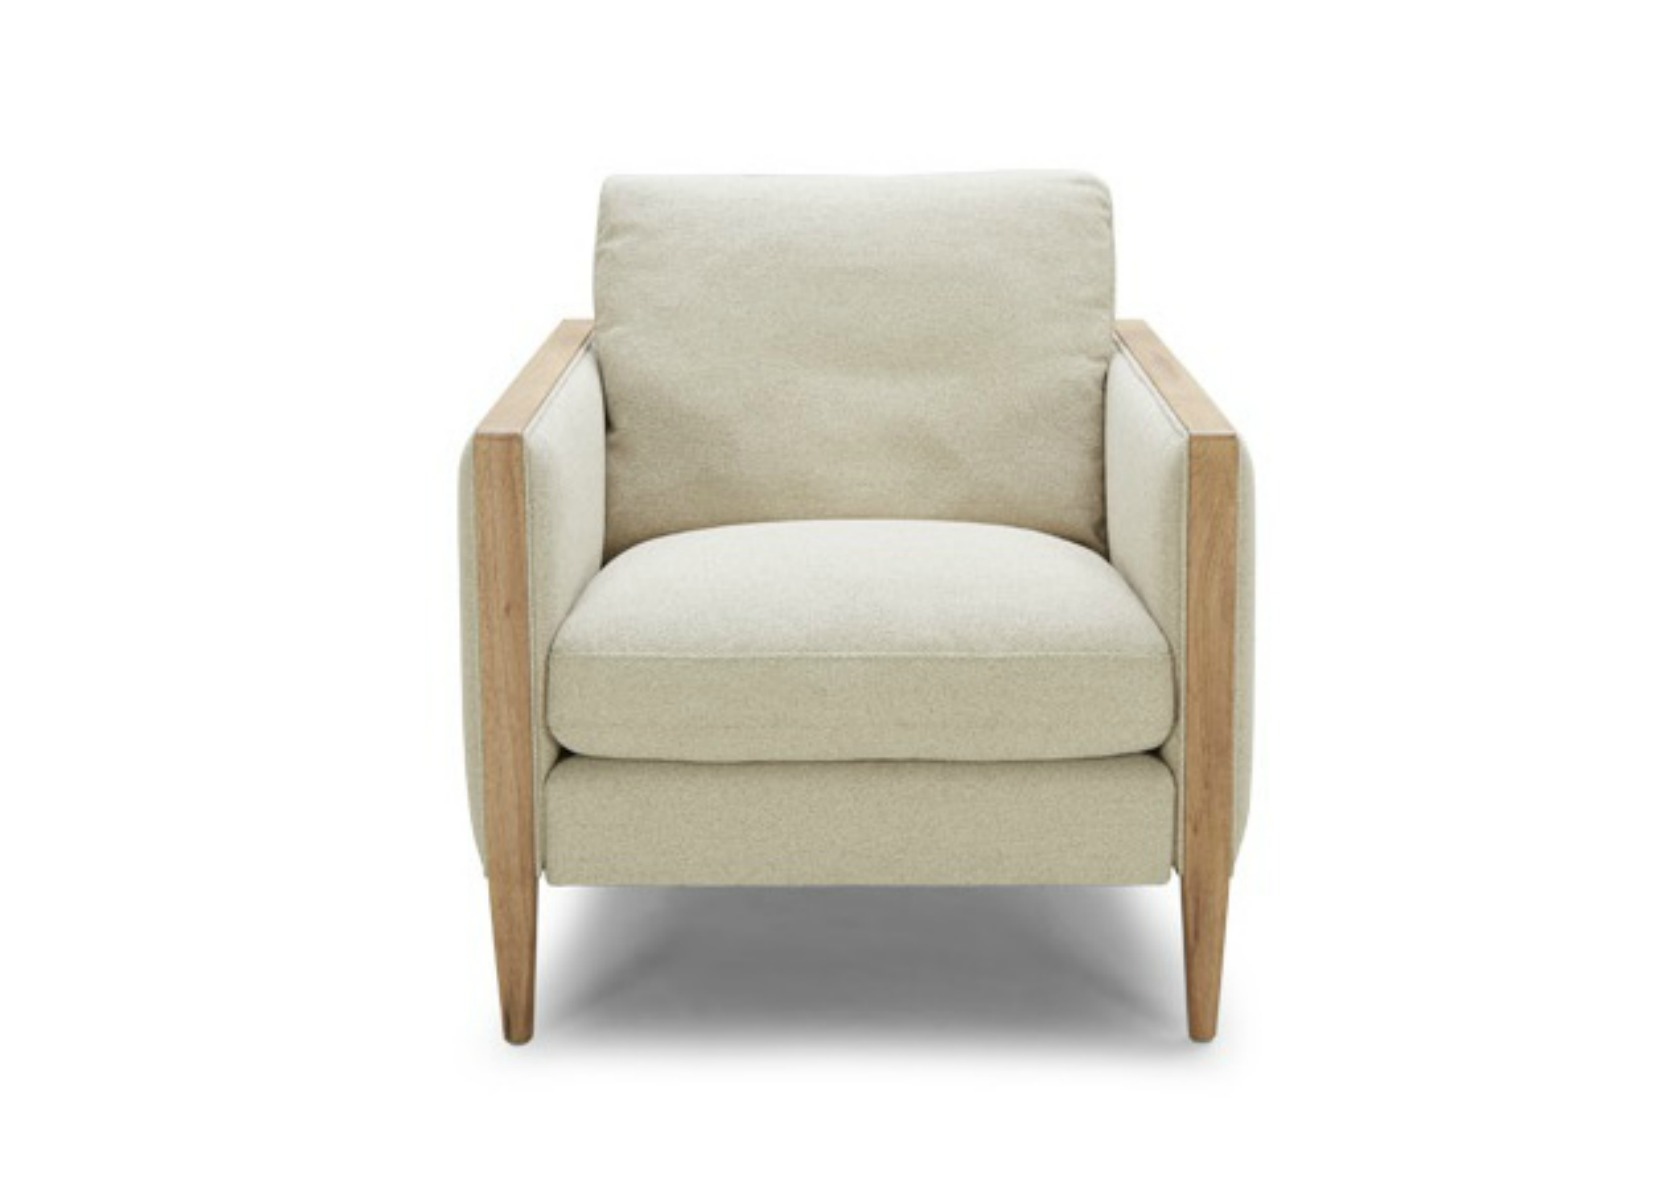 Sofa In Linen Mix Fabric And Birch Wood Not Just Brown